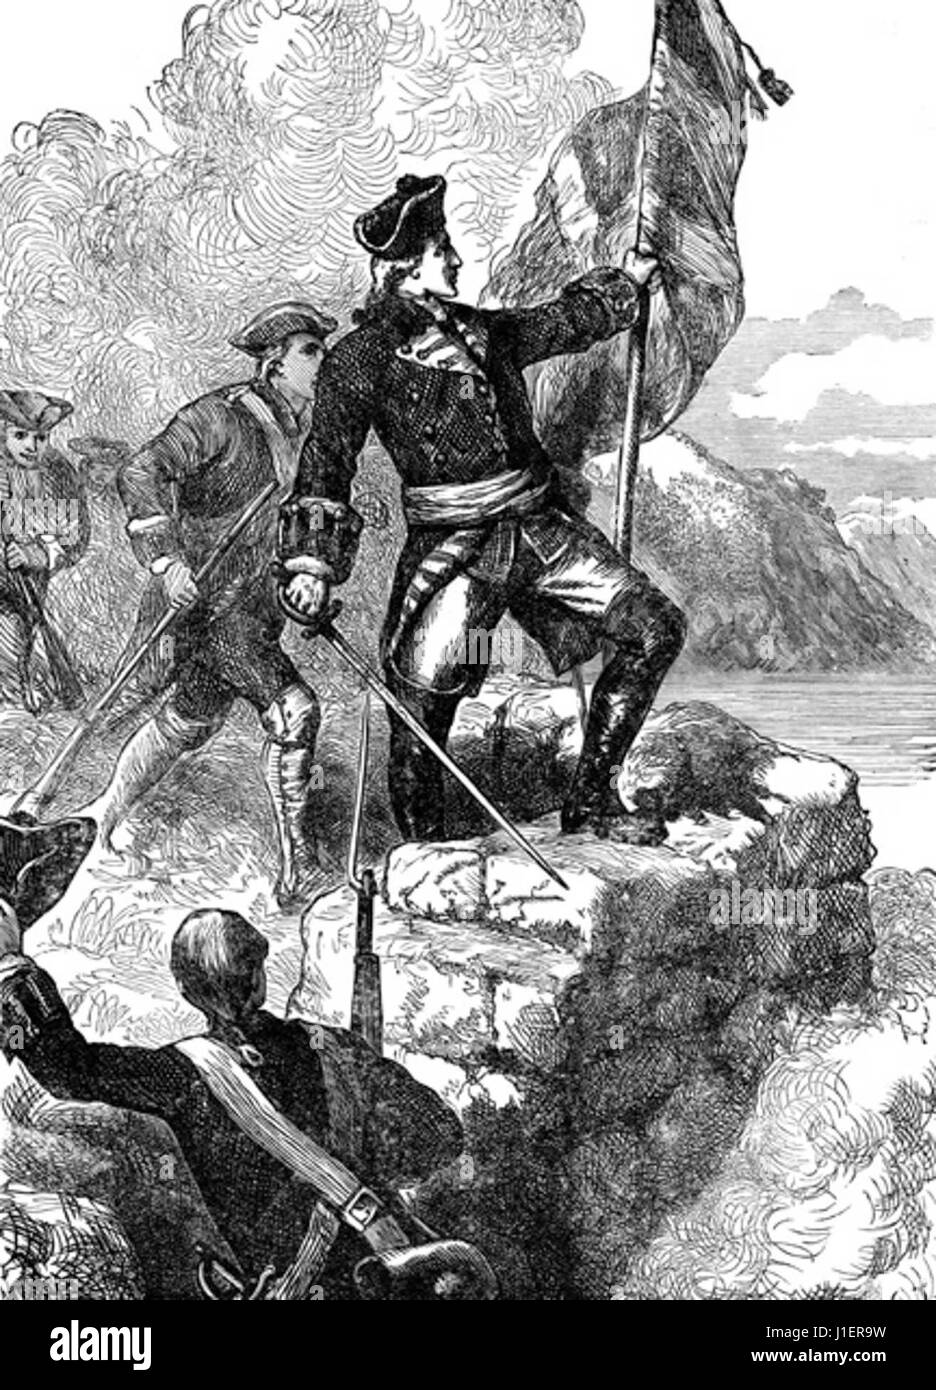 FRENCH AND INDIAN WAR: WASHINGTON PLANTING THE FLAG ON FORT DU QUESNE Stock Photo